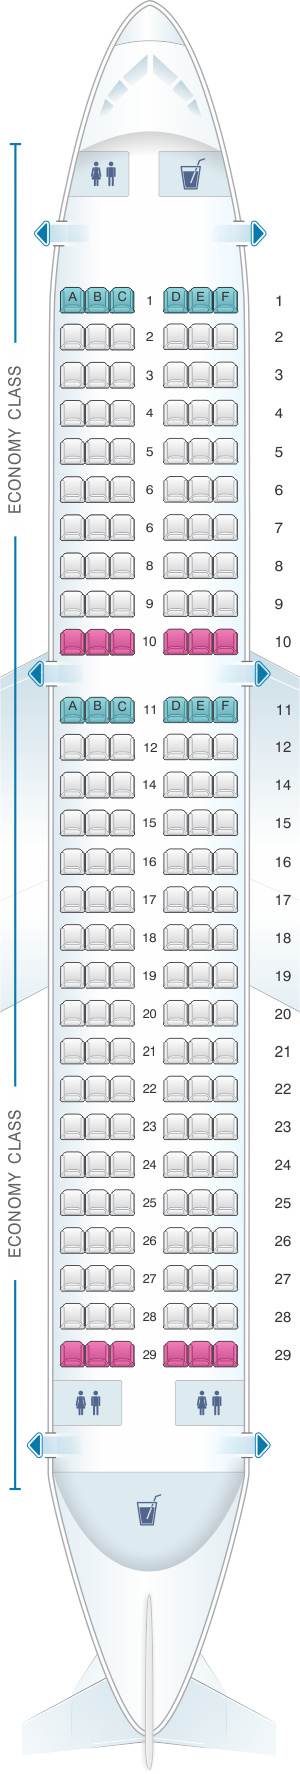 Seat map for Air India Airbus A320 231 Classic